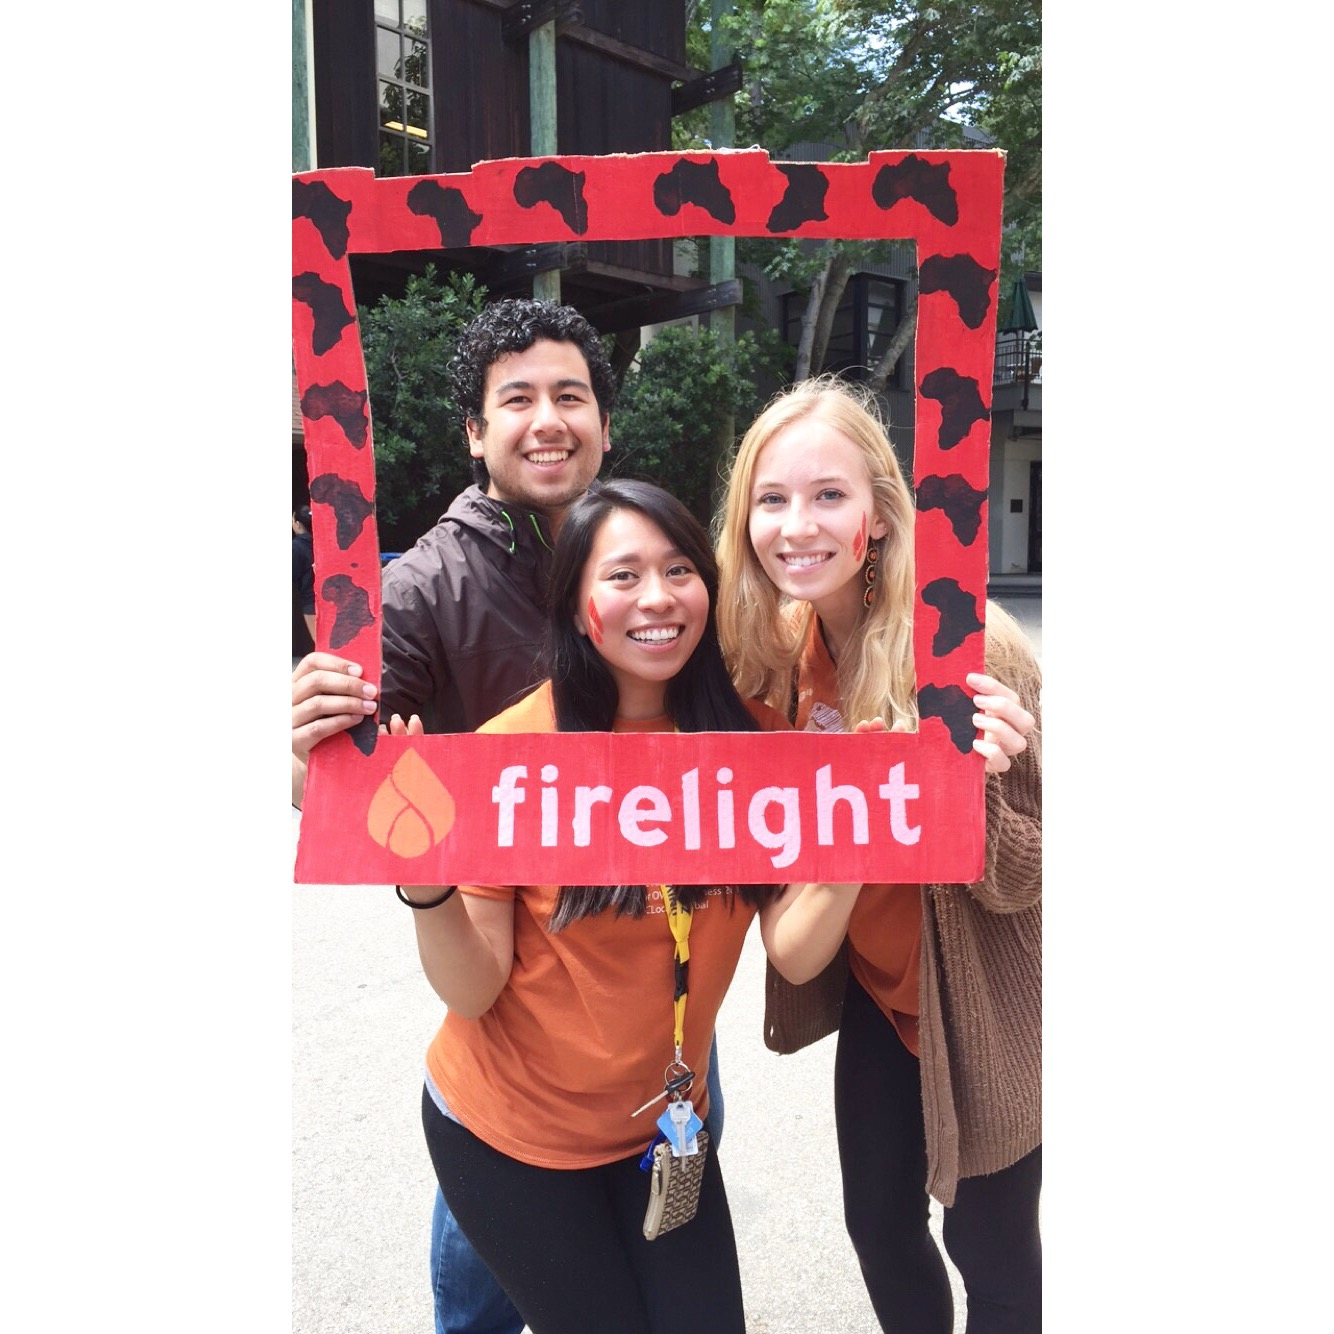 Student fundraisers (from left to right): Jose Contreras, Karen Cortez, & Kathryn Kemper